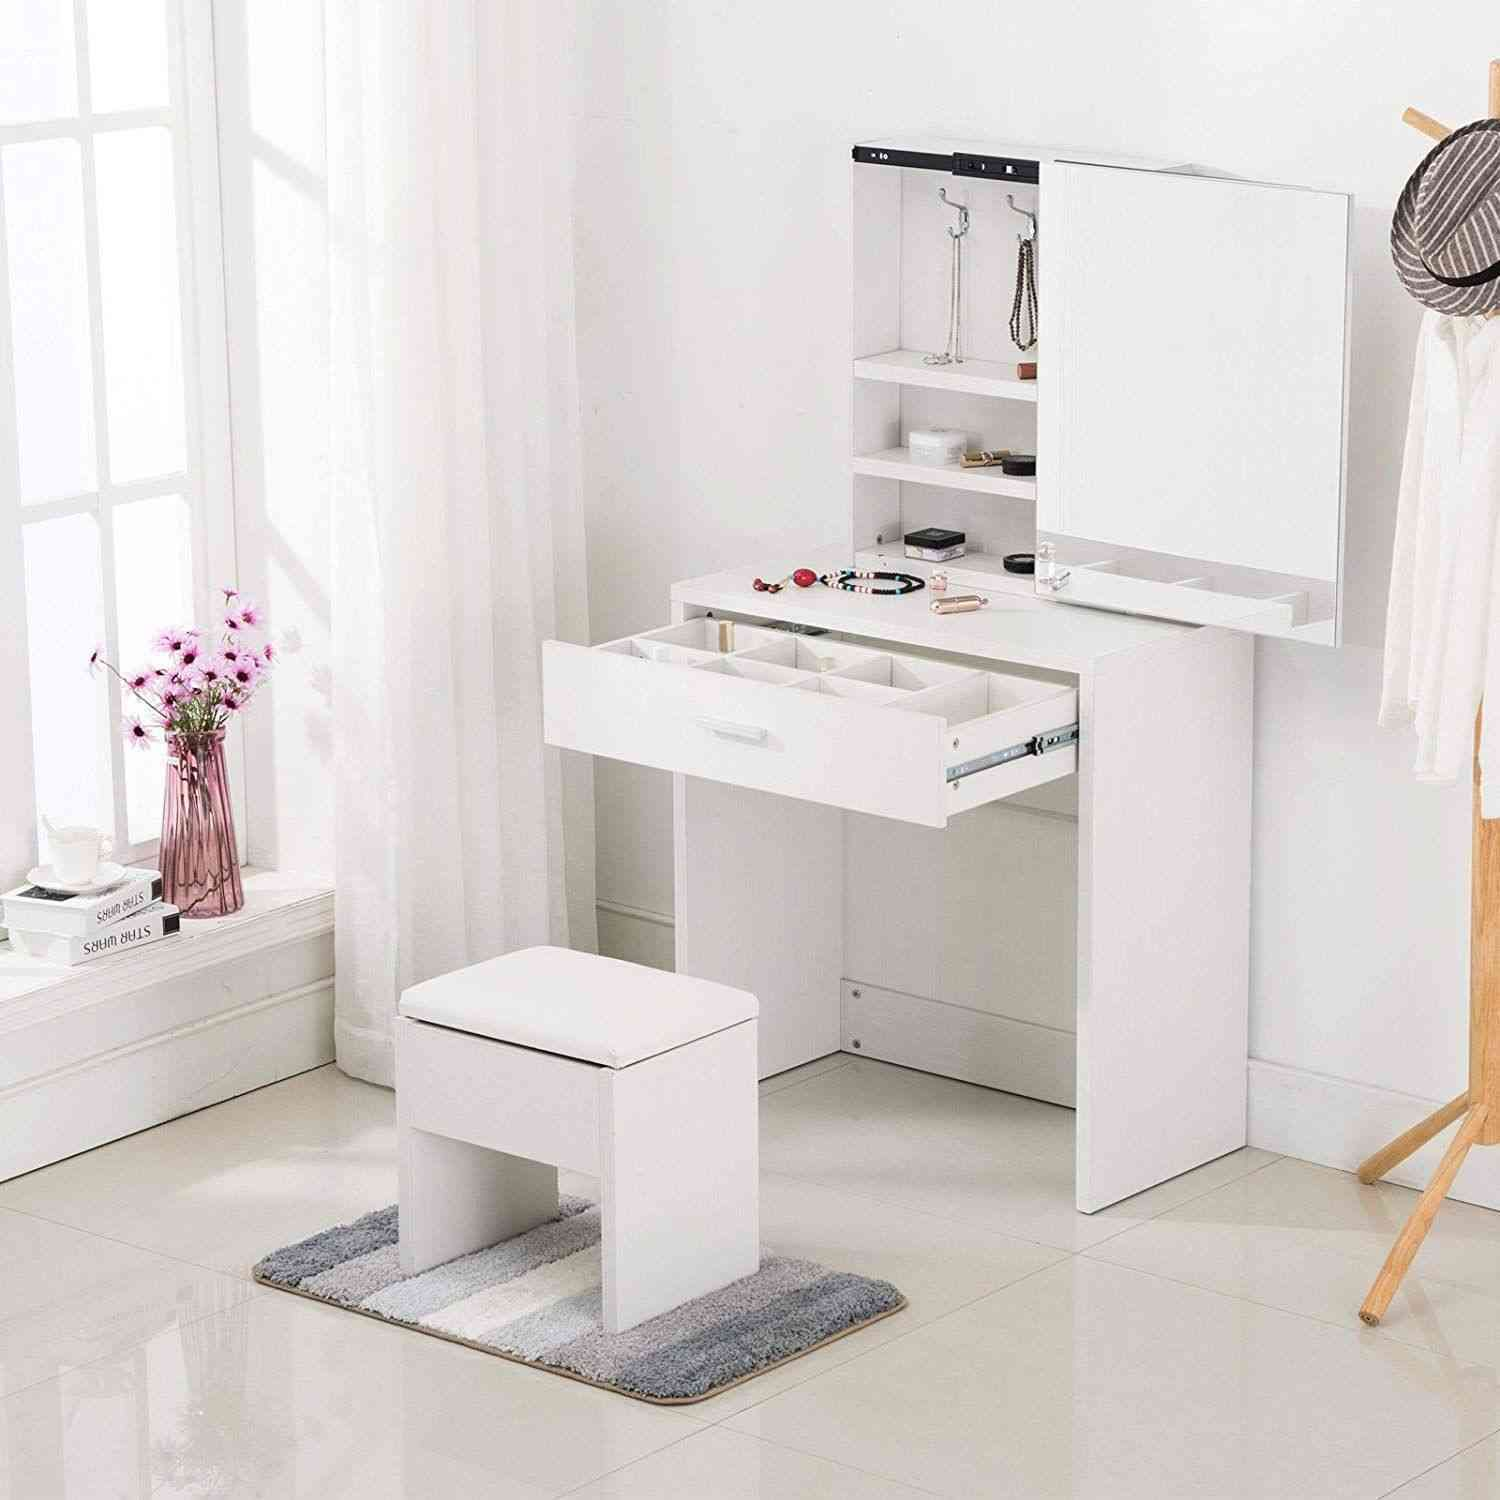 14 Luxury Dressing Table With Some Extra Mirrors Dressing Table With Drawers Dressing Table Design Dressing Table With Stool